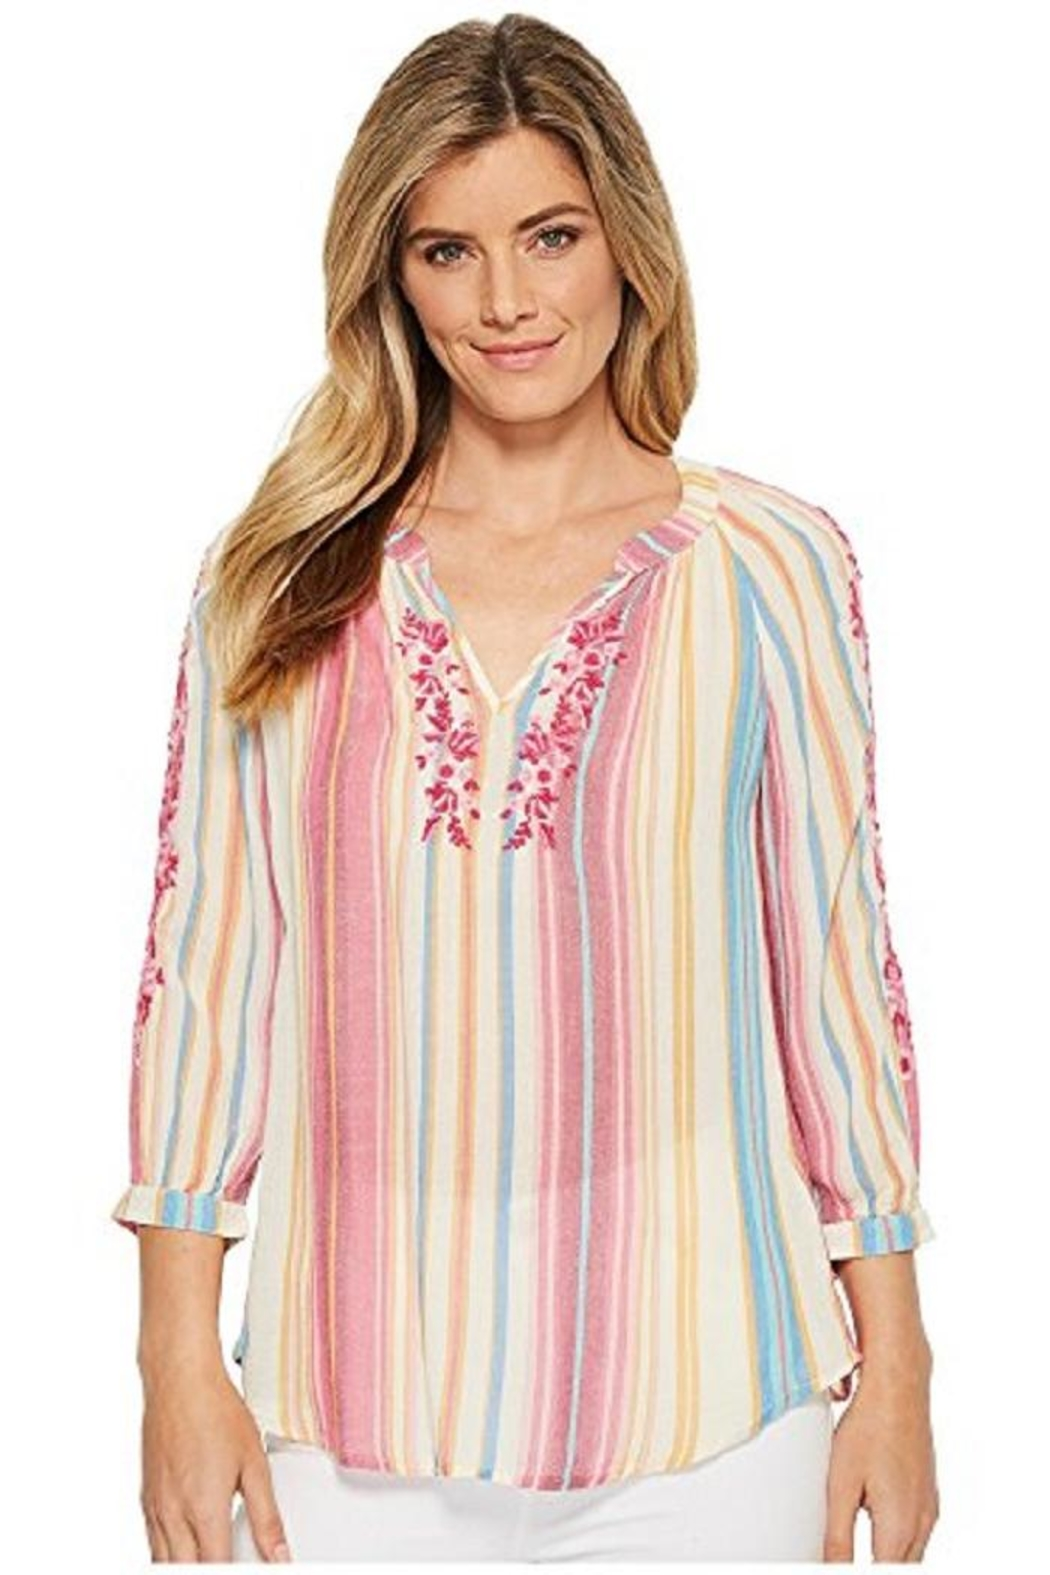 Kut from the Kloth Colorful Embroidered Top - Main Image